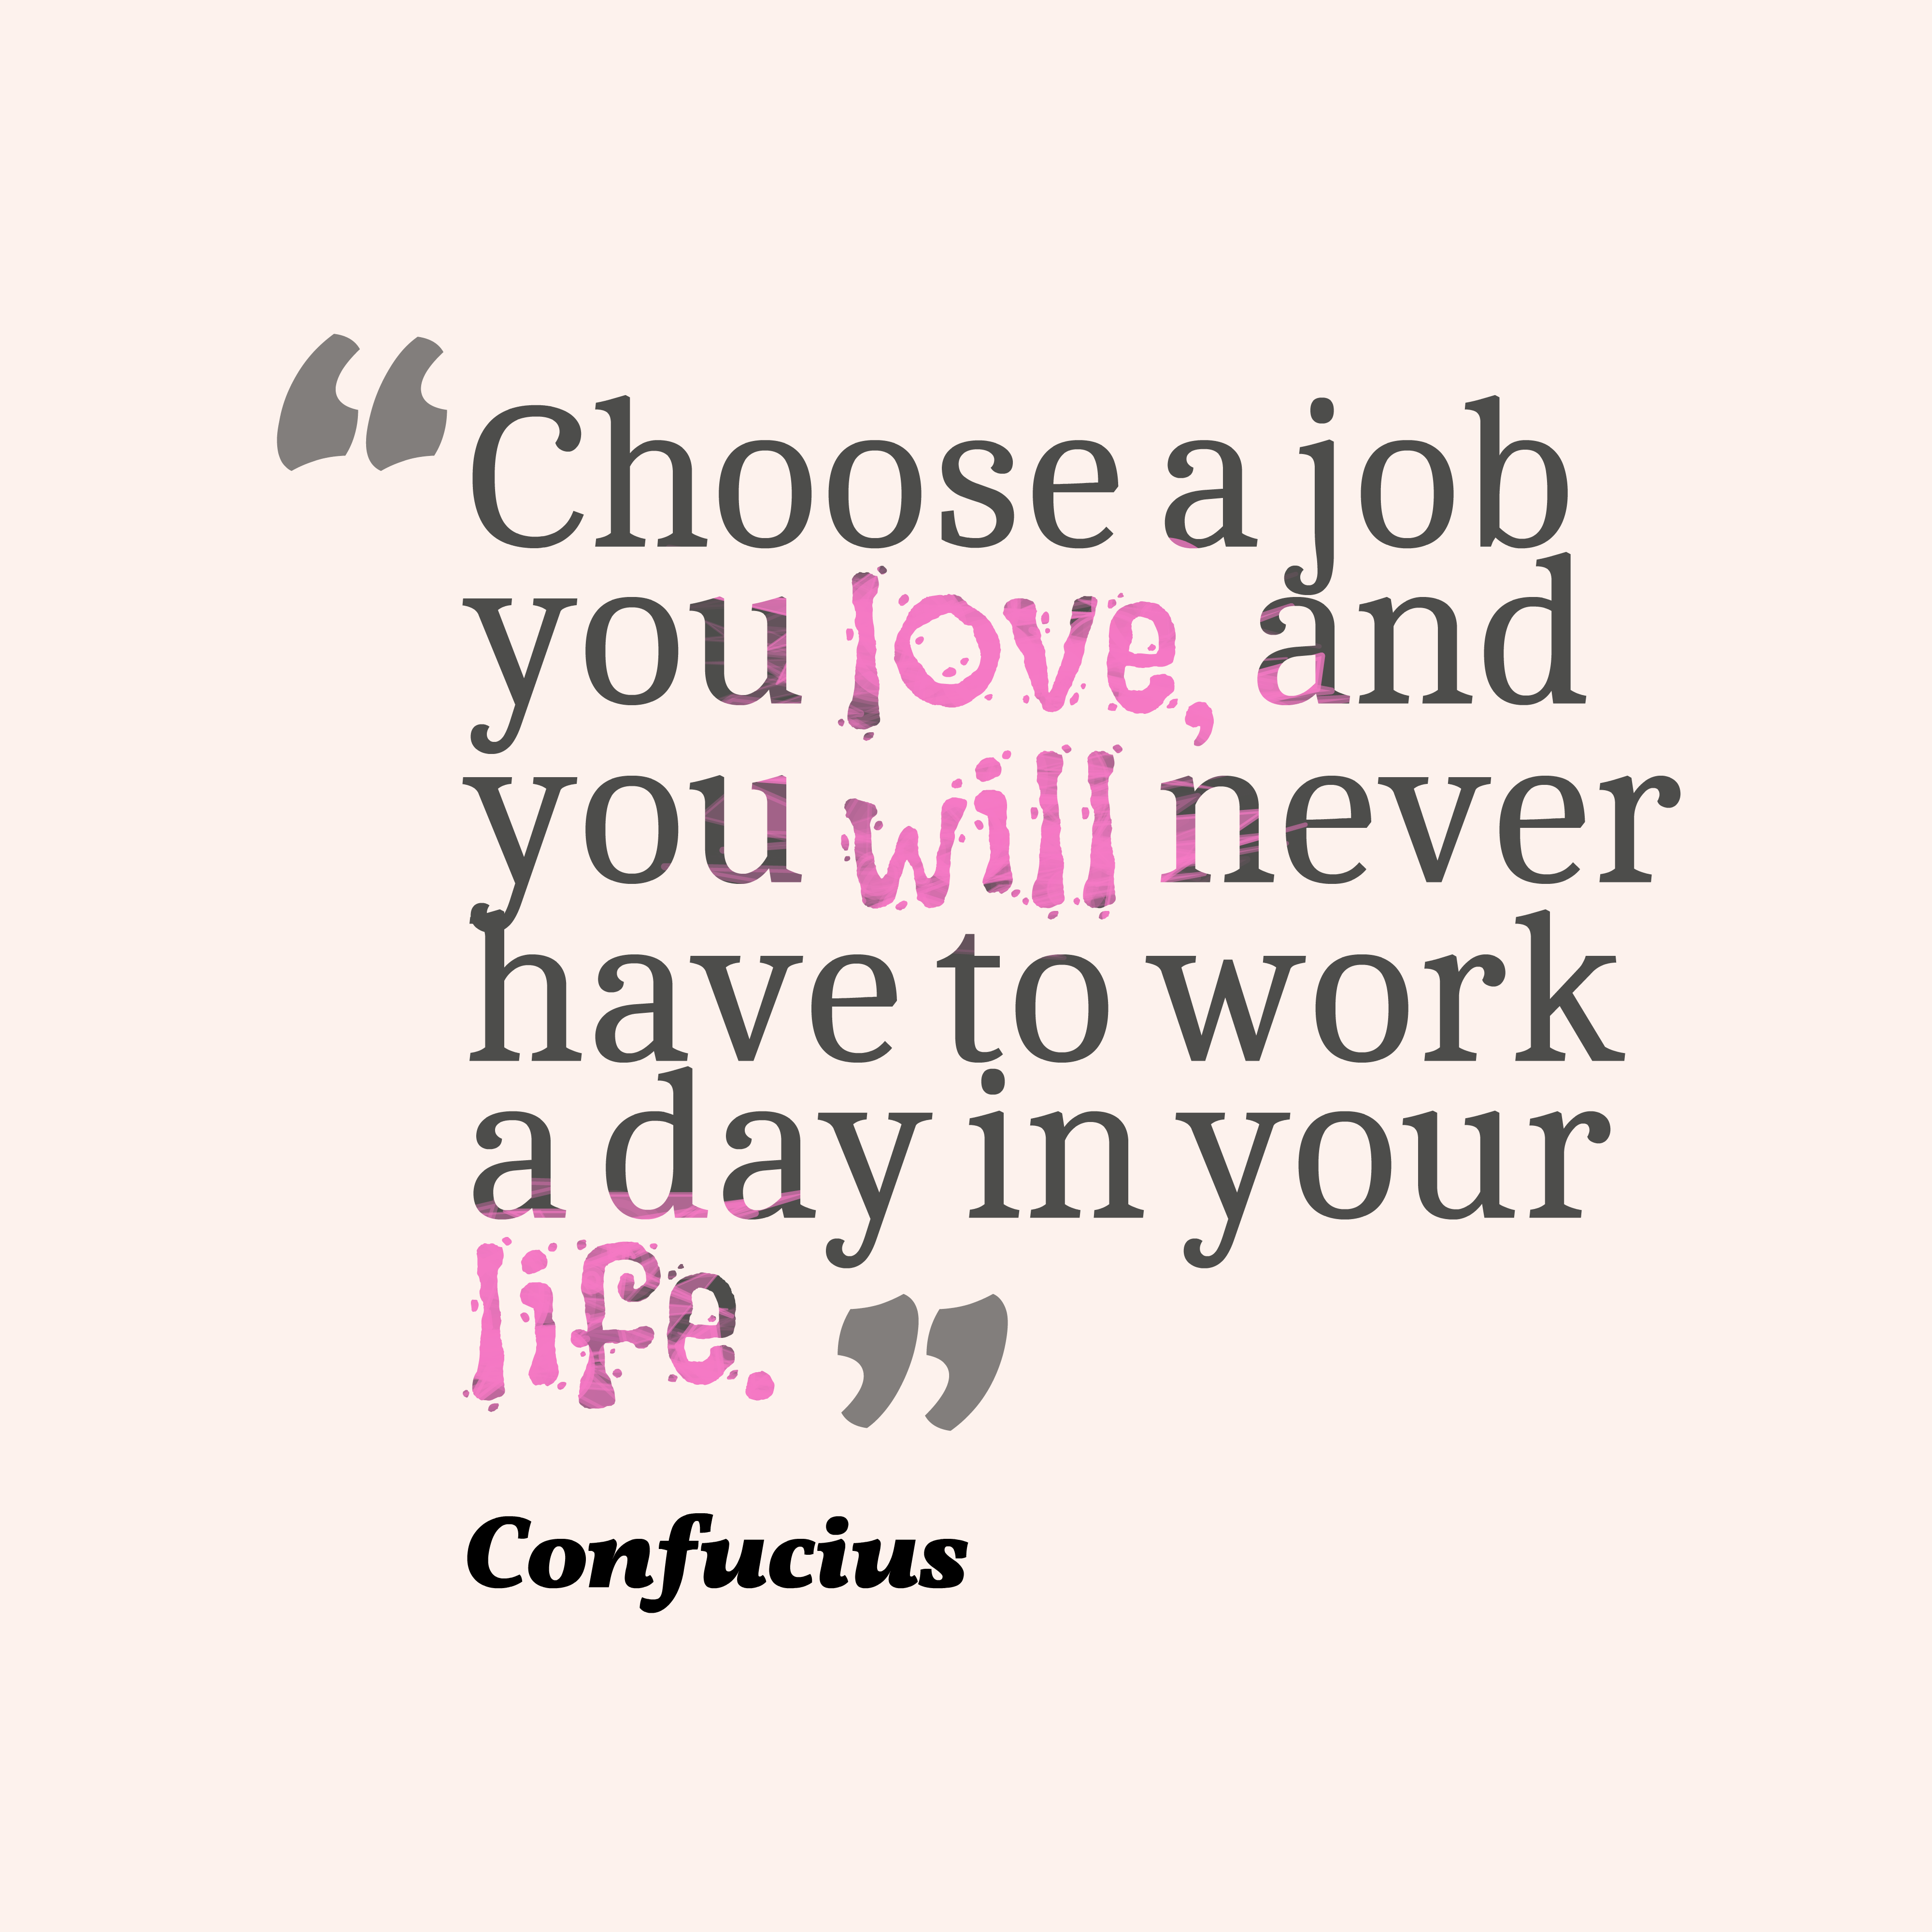 Life Quotes Careers: Confucius Quote About Love